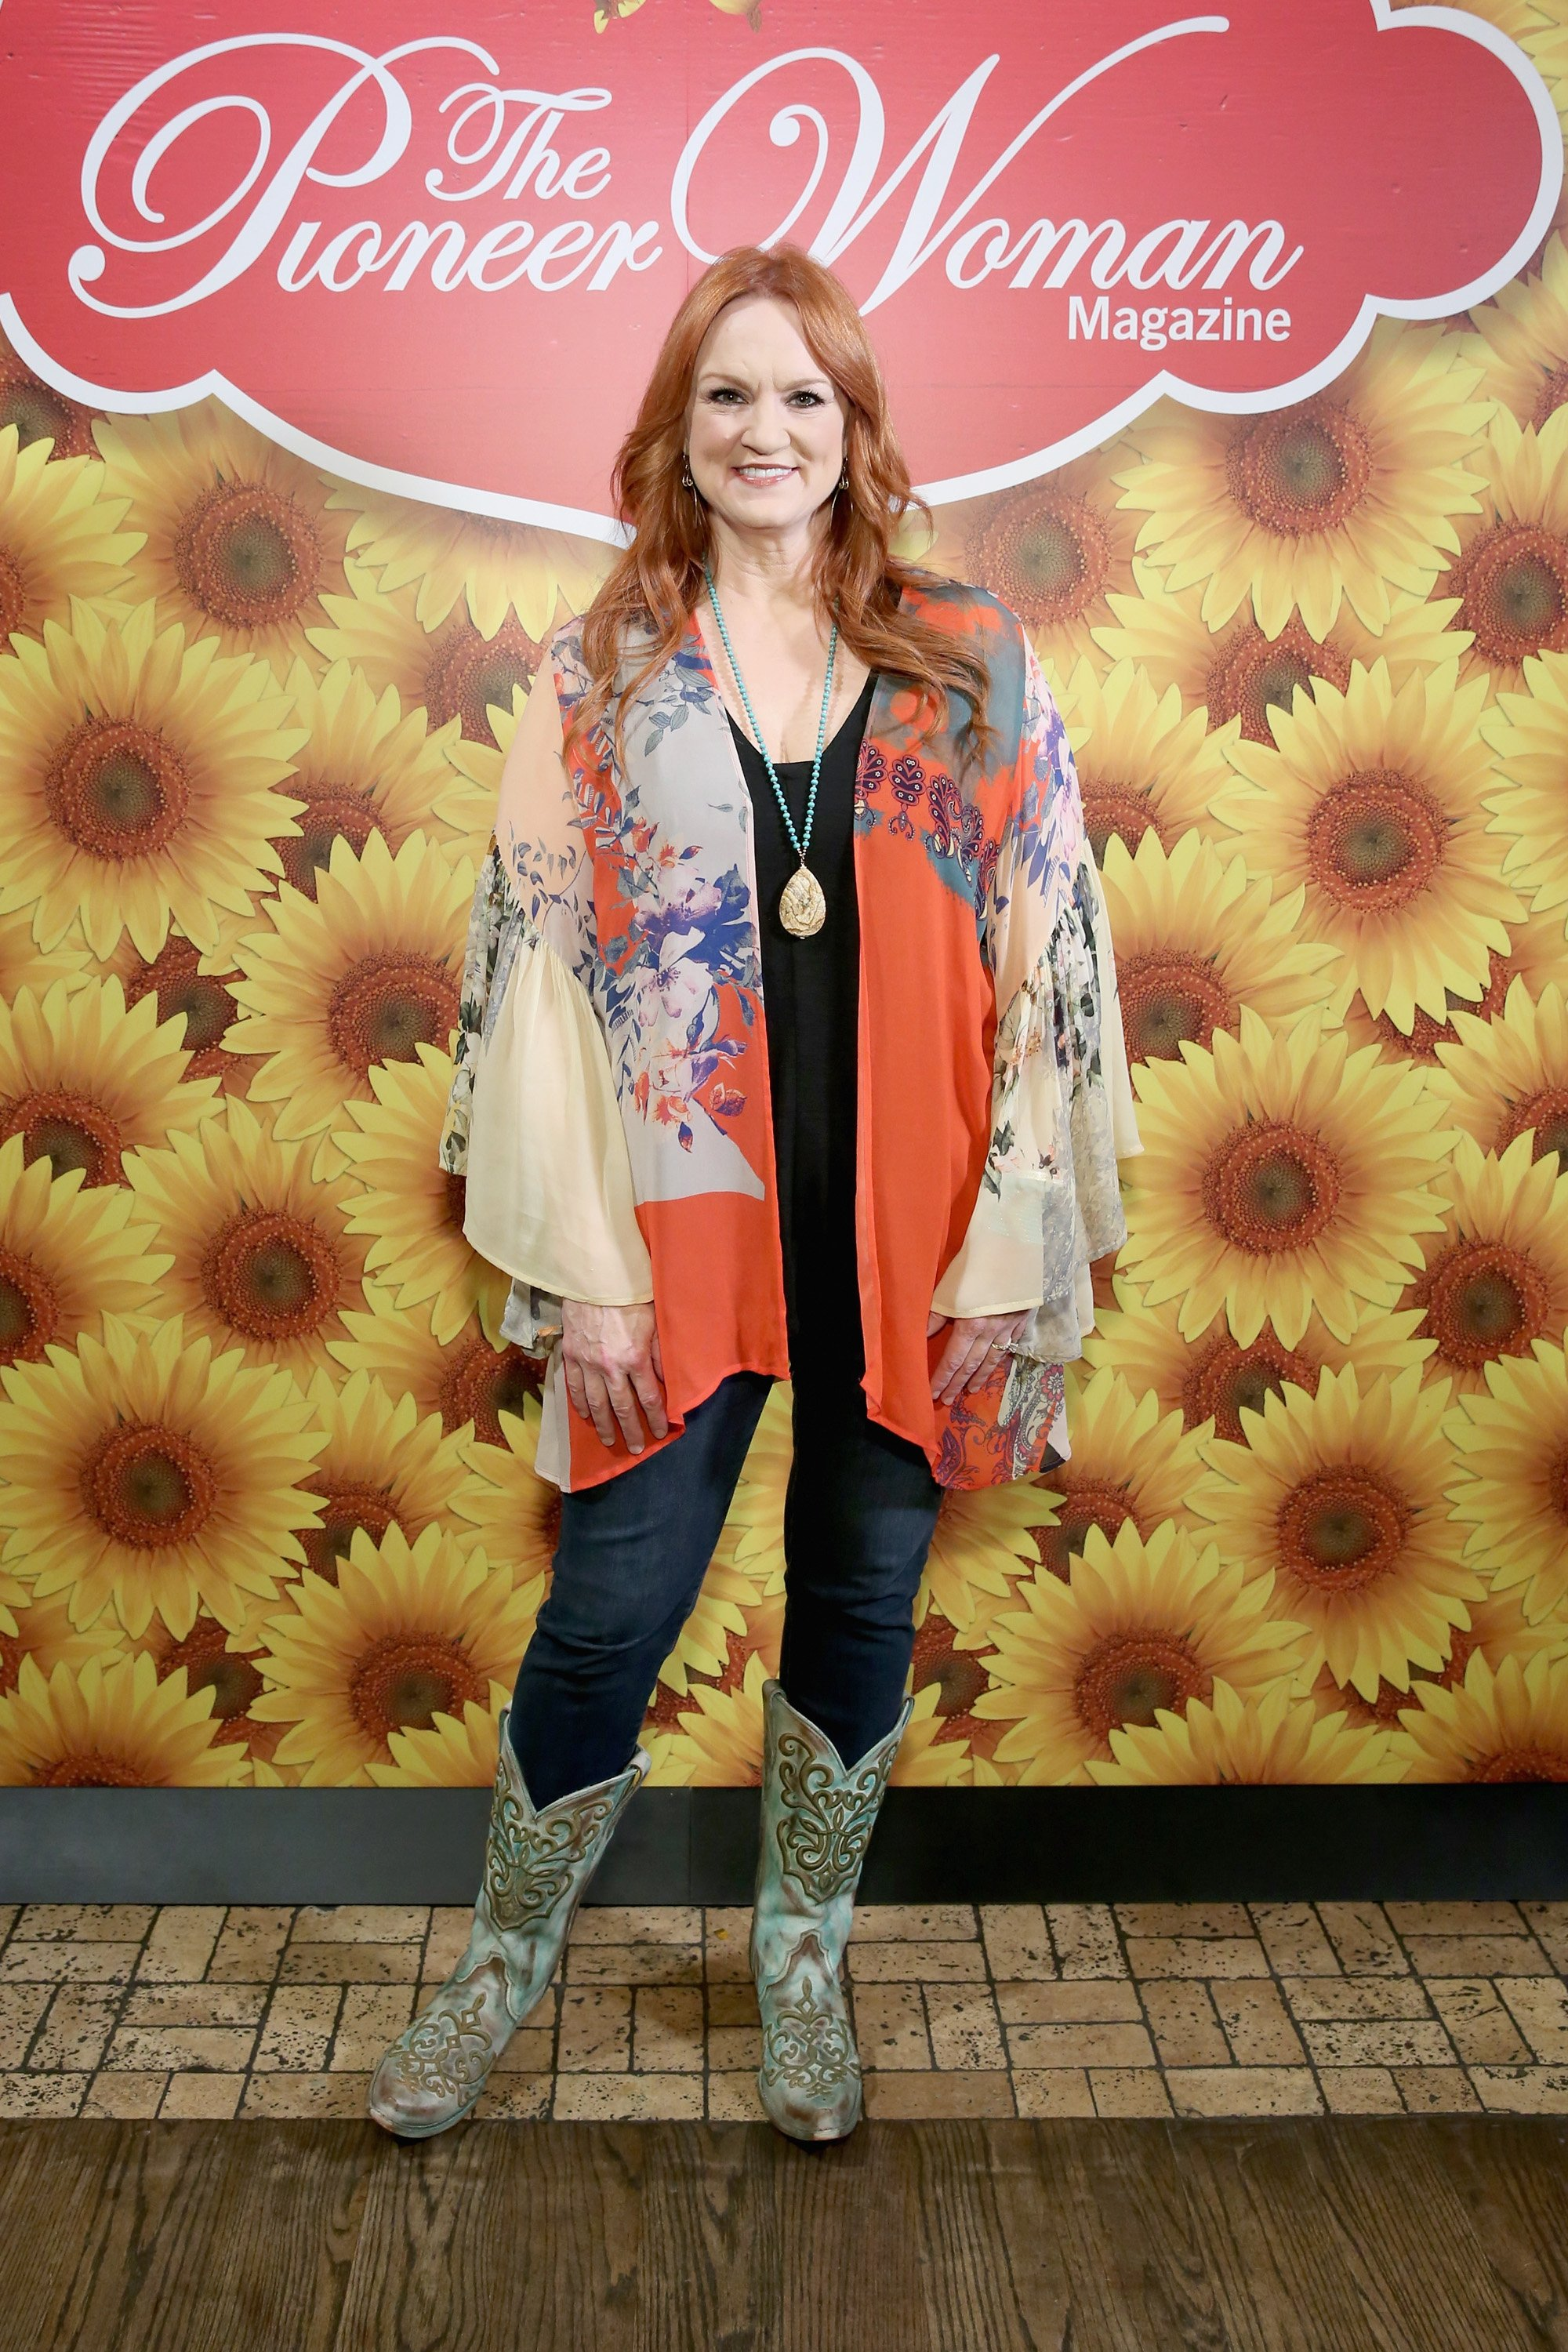 """Ree Drummond attends the """"Pioneer Woman"""" magazine celebration at the Mason Jar in New York City on June 6, 2017 